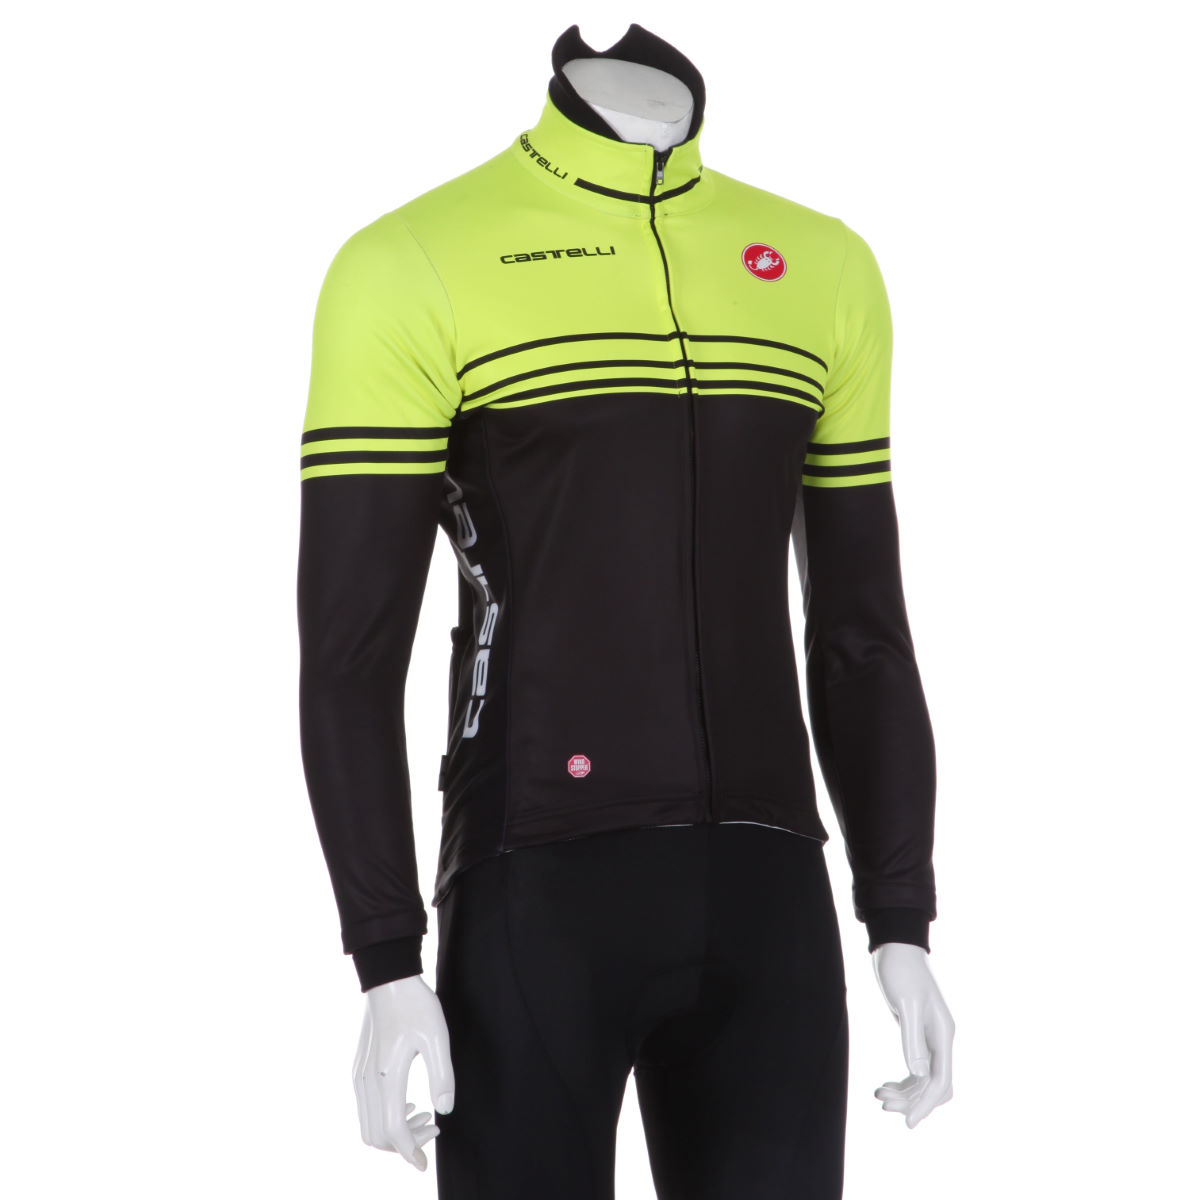 Castelli Exclusive Stripes Free Jacket